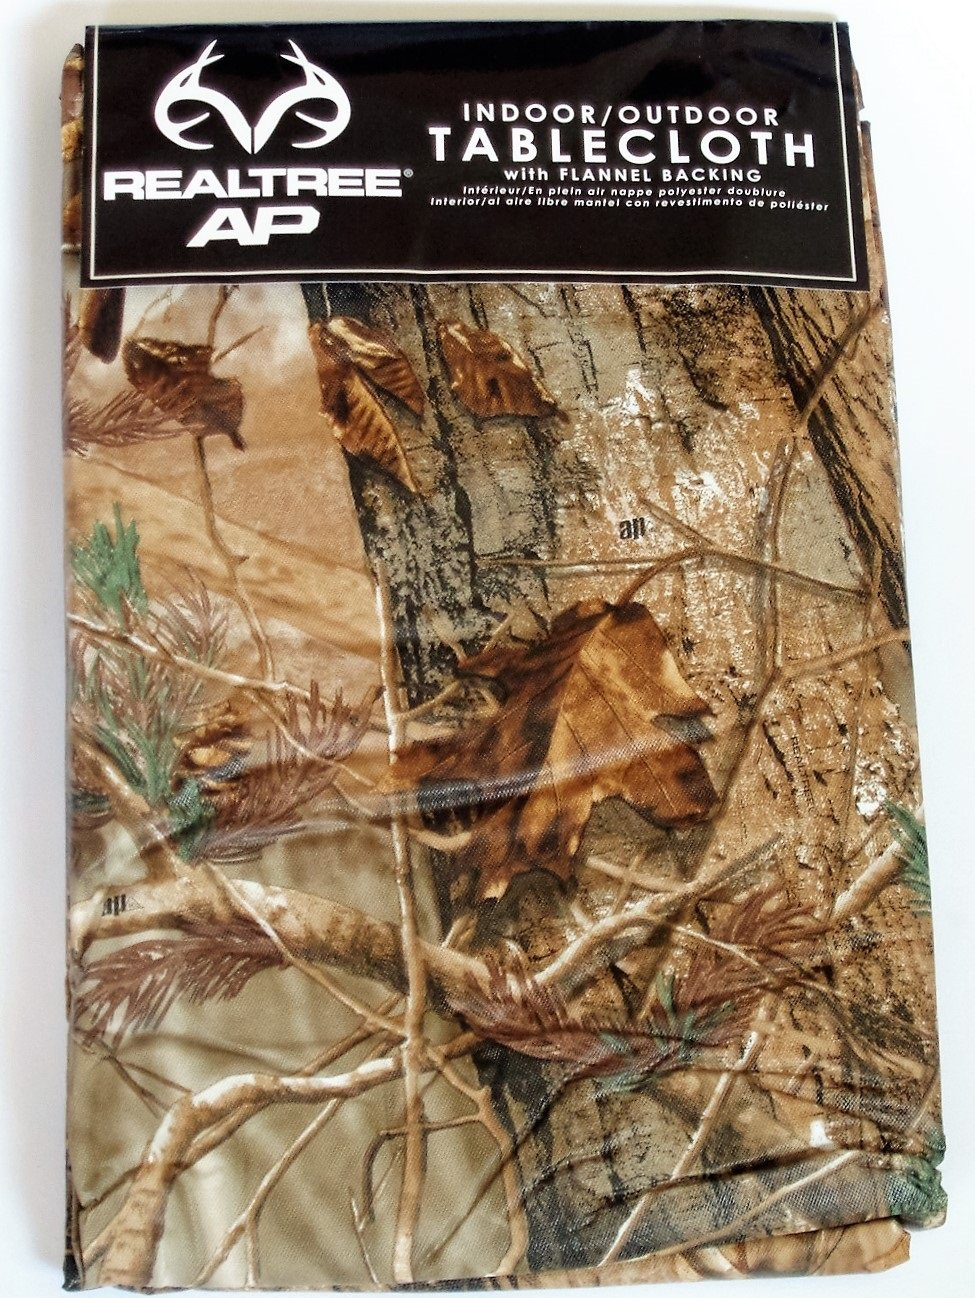 Cabin Lodge Themed Camouflage Trees Peva Tablecloth Round